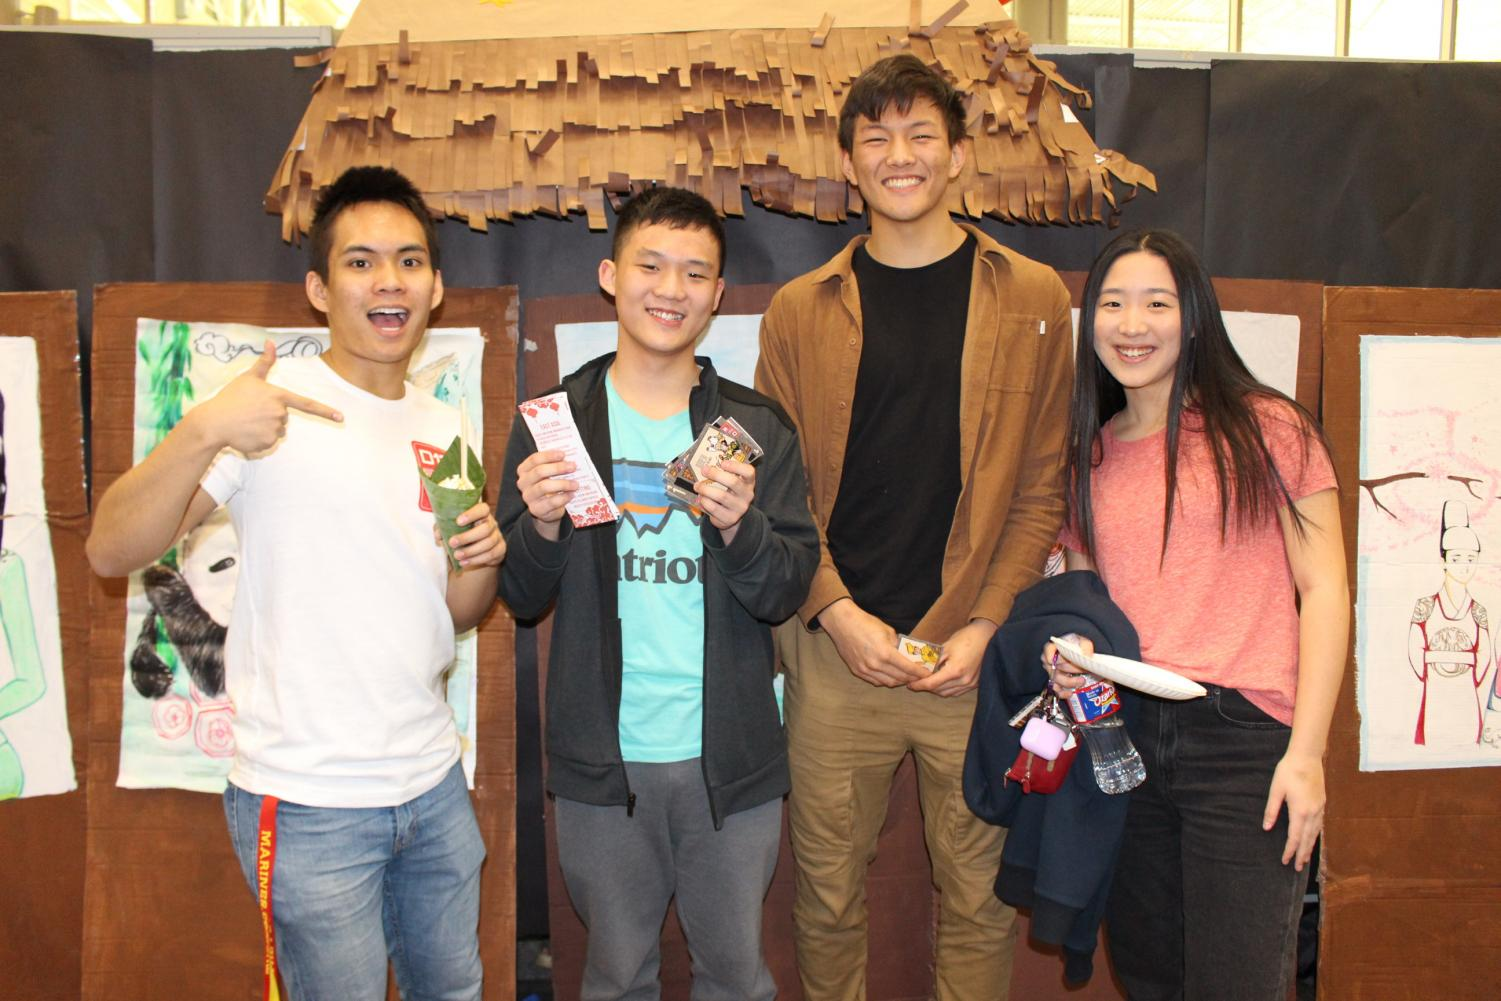 Patrick Tong '20, Connie Song '20, Gavin Meng '20 and Sean De Asis '20 smile in front of the art displays.